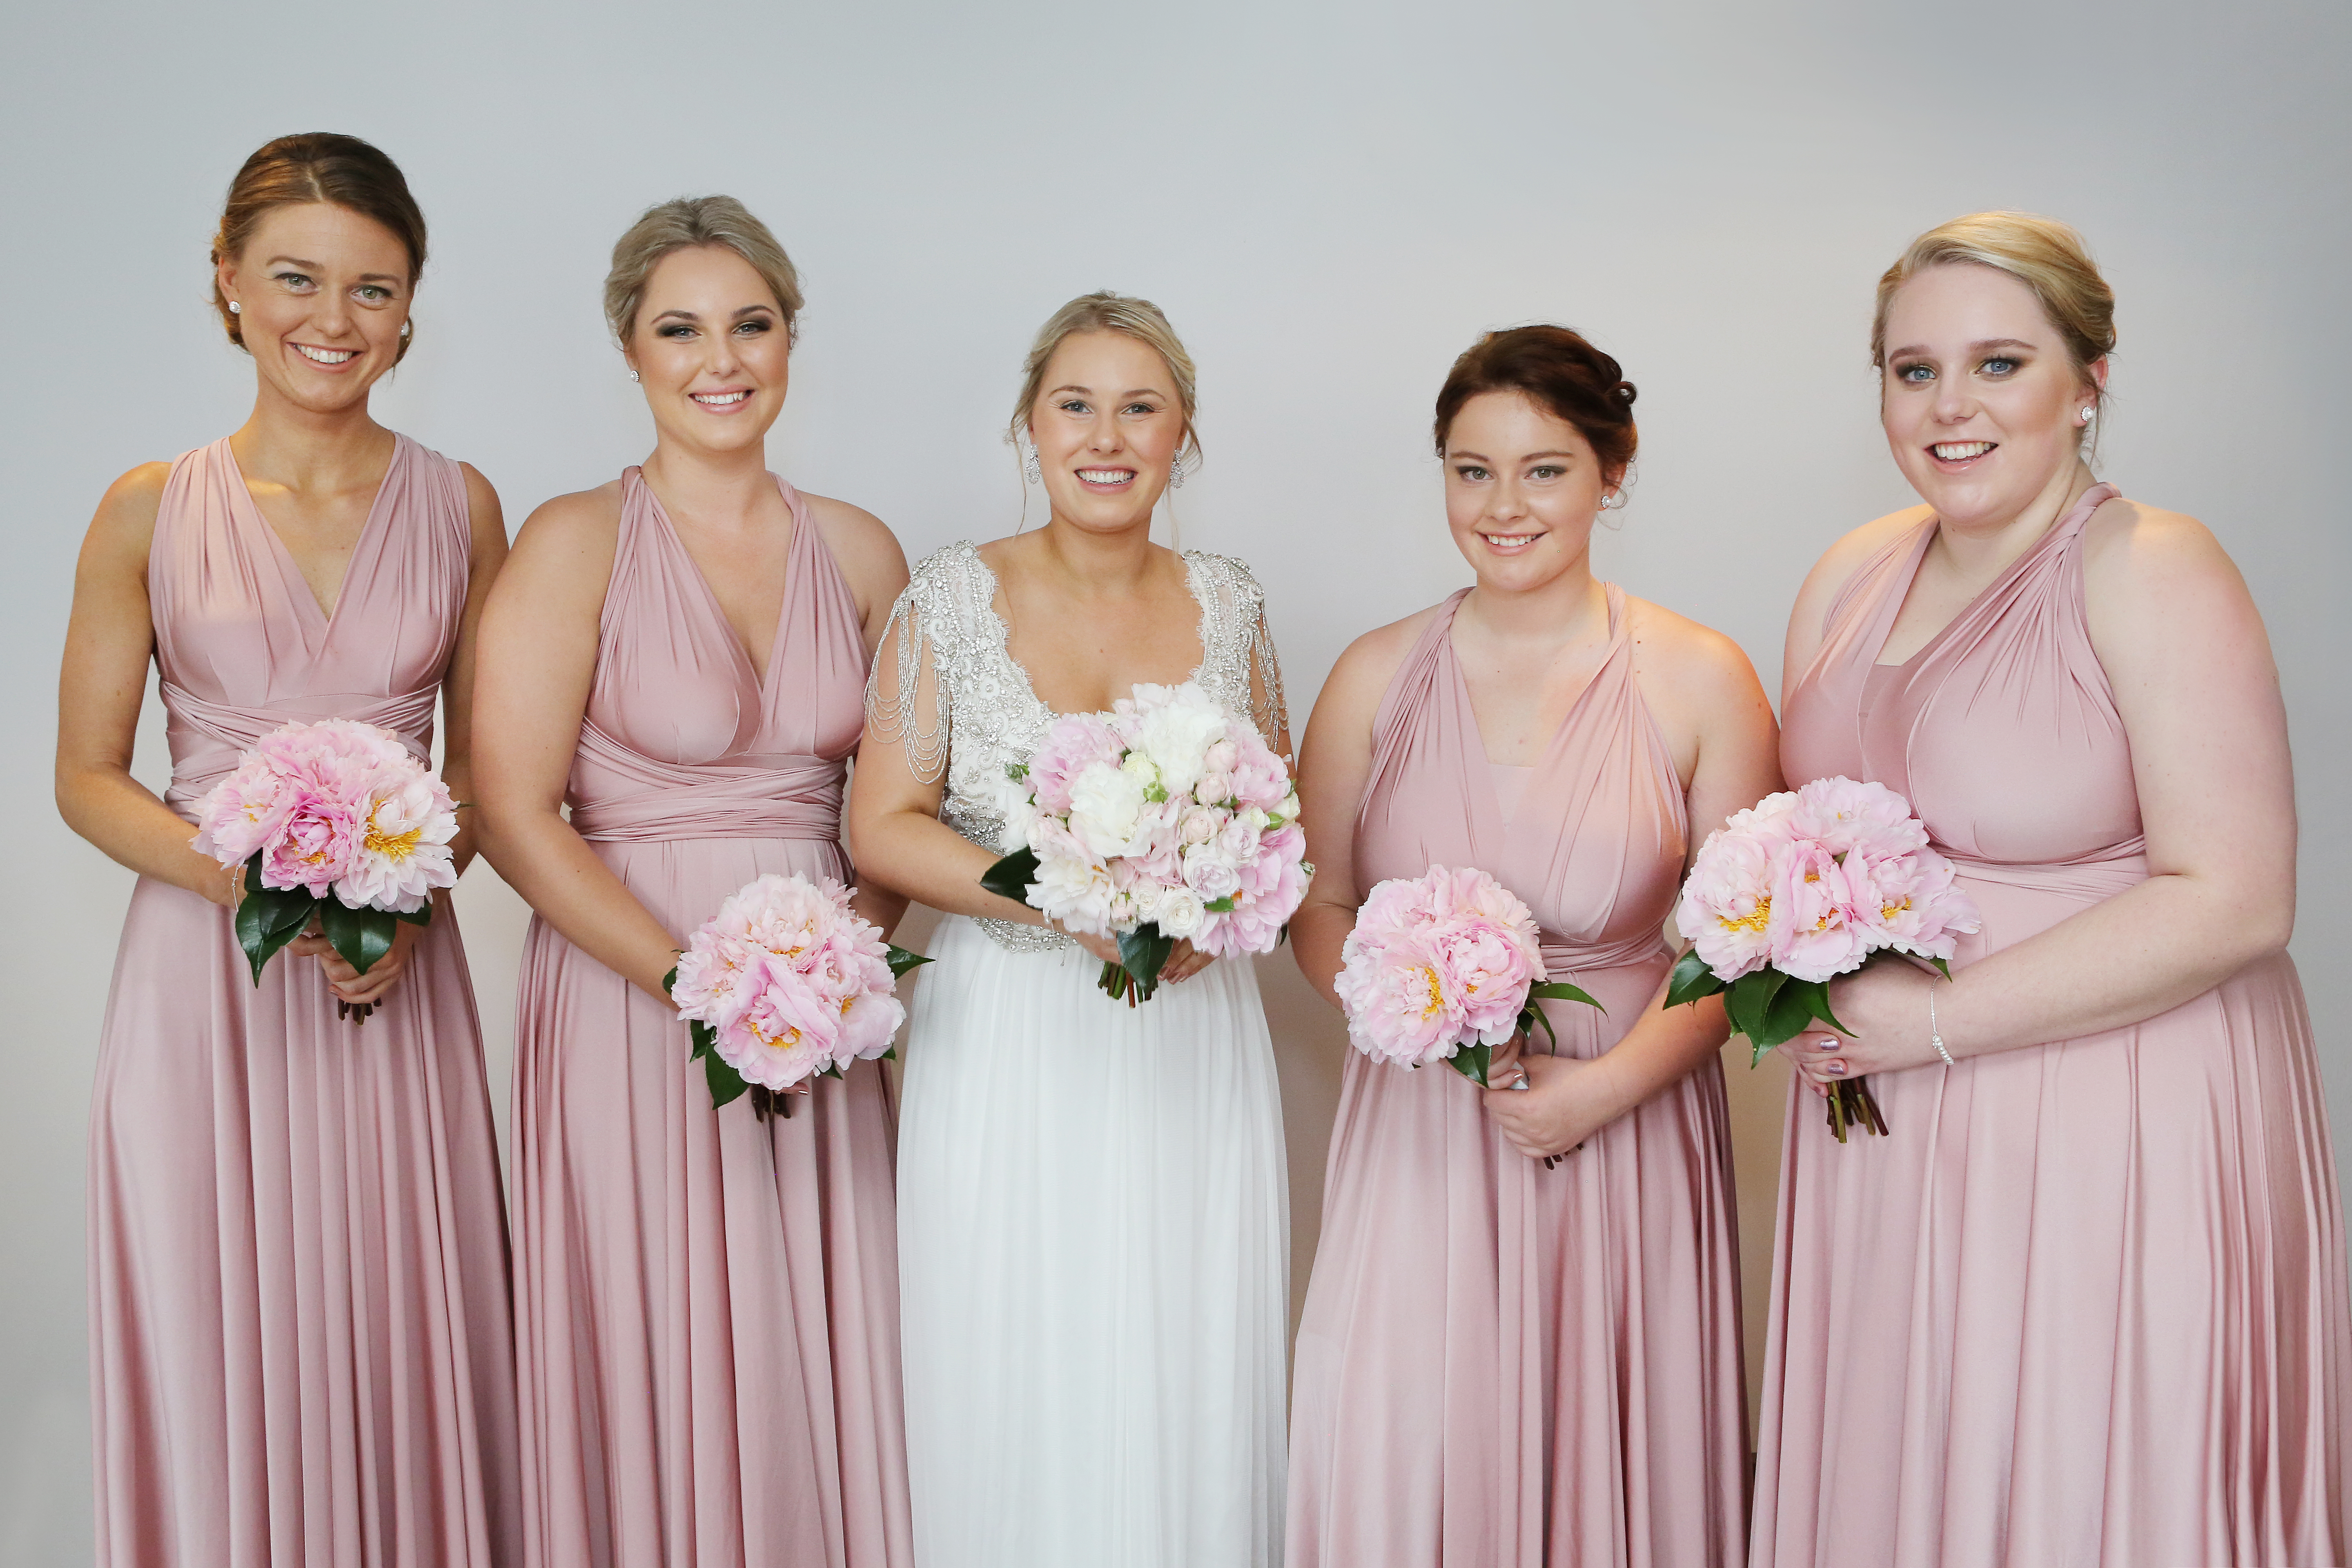 Goddess by nature australian made bridesmaids and wedding dresses i purchased four of the goddess by nature signature multiway ballgowns in the dust me pink color for my wedding in november 2016 your gownsdresses are ombrellifo Images